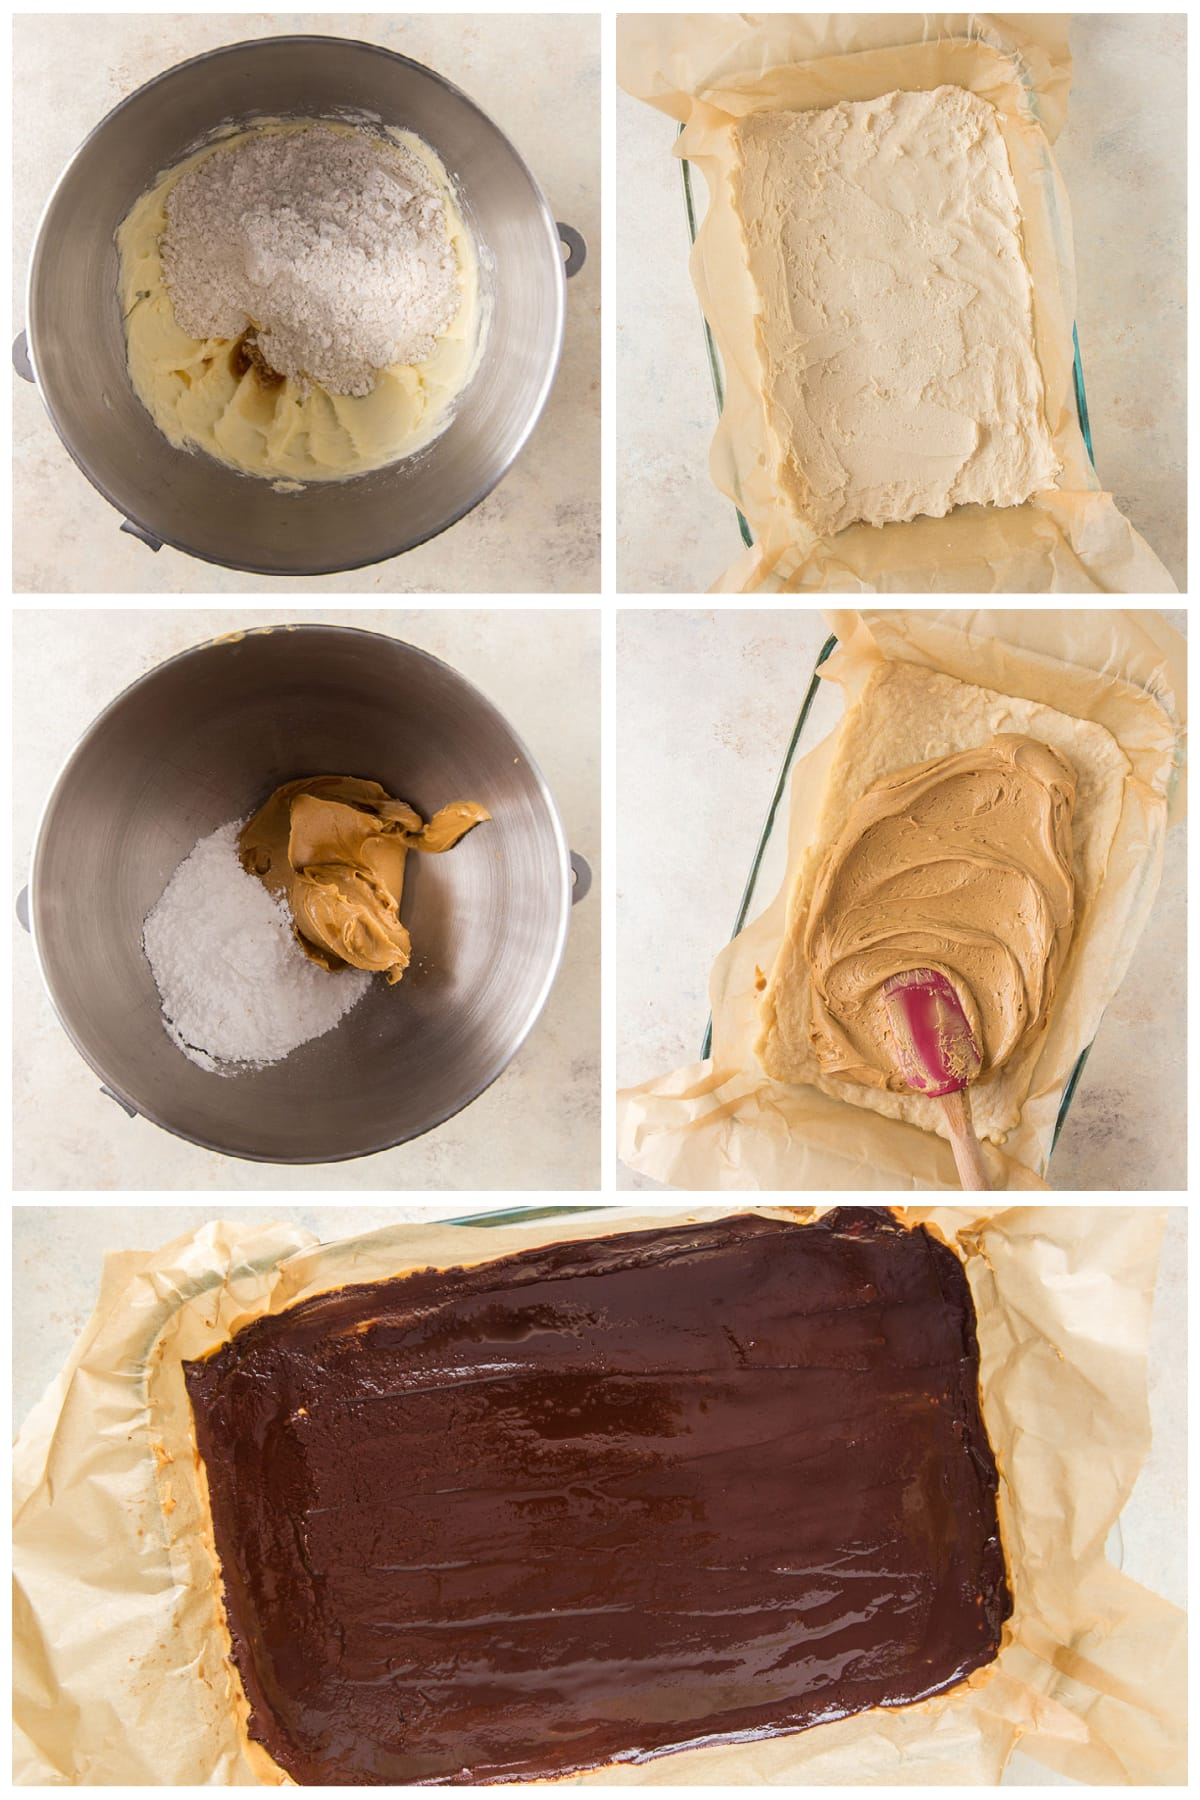 photo collage demonstrating how to make layers for peanut butter chocolate bars